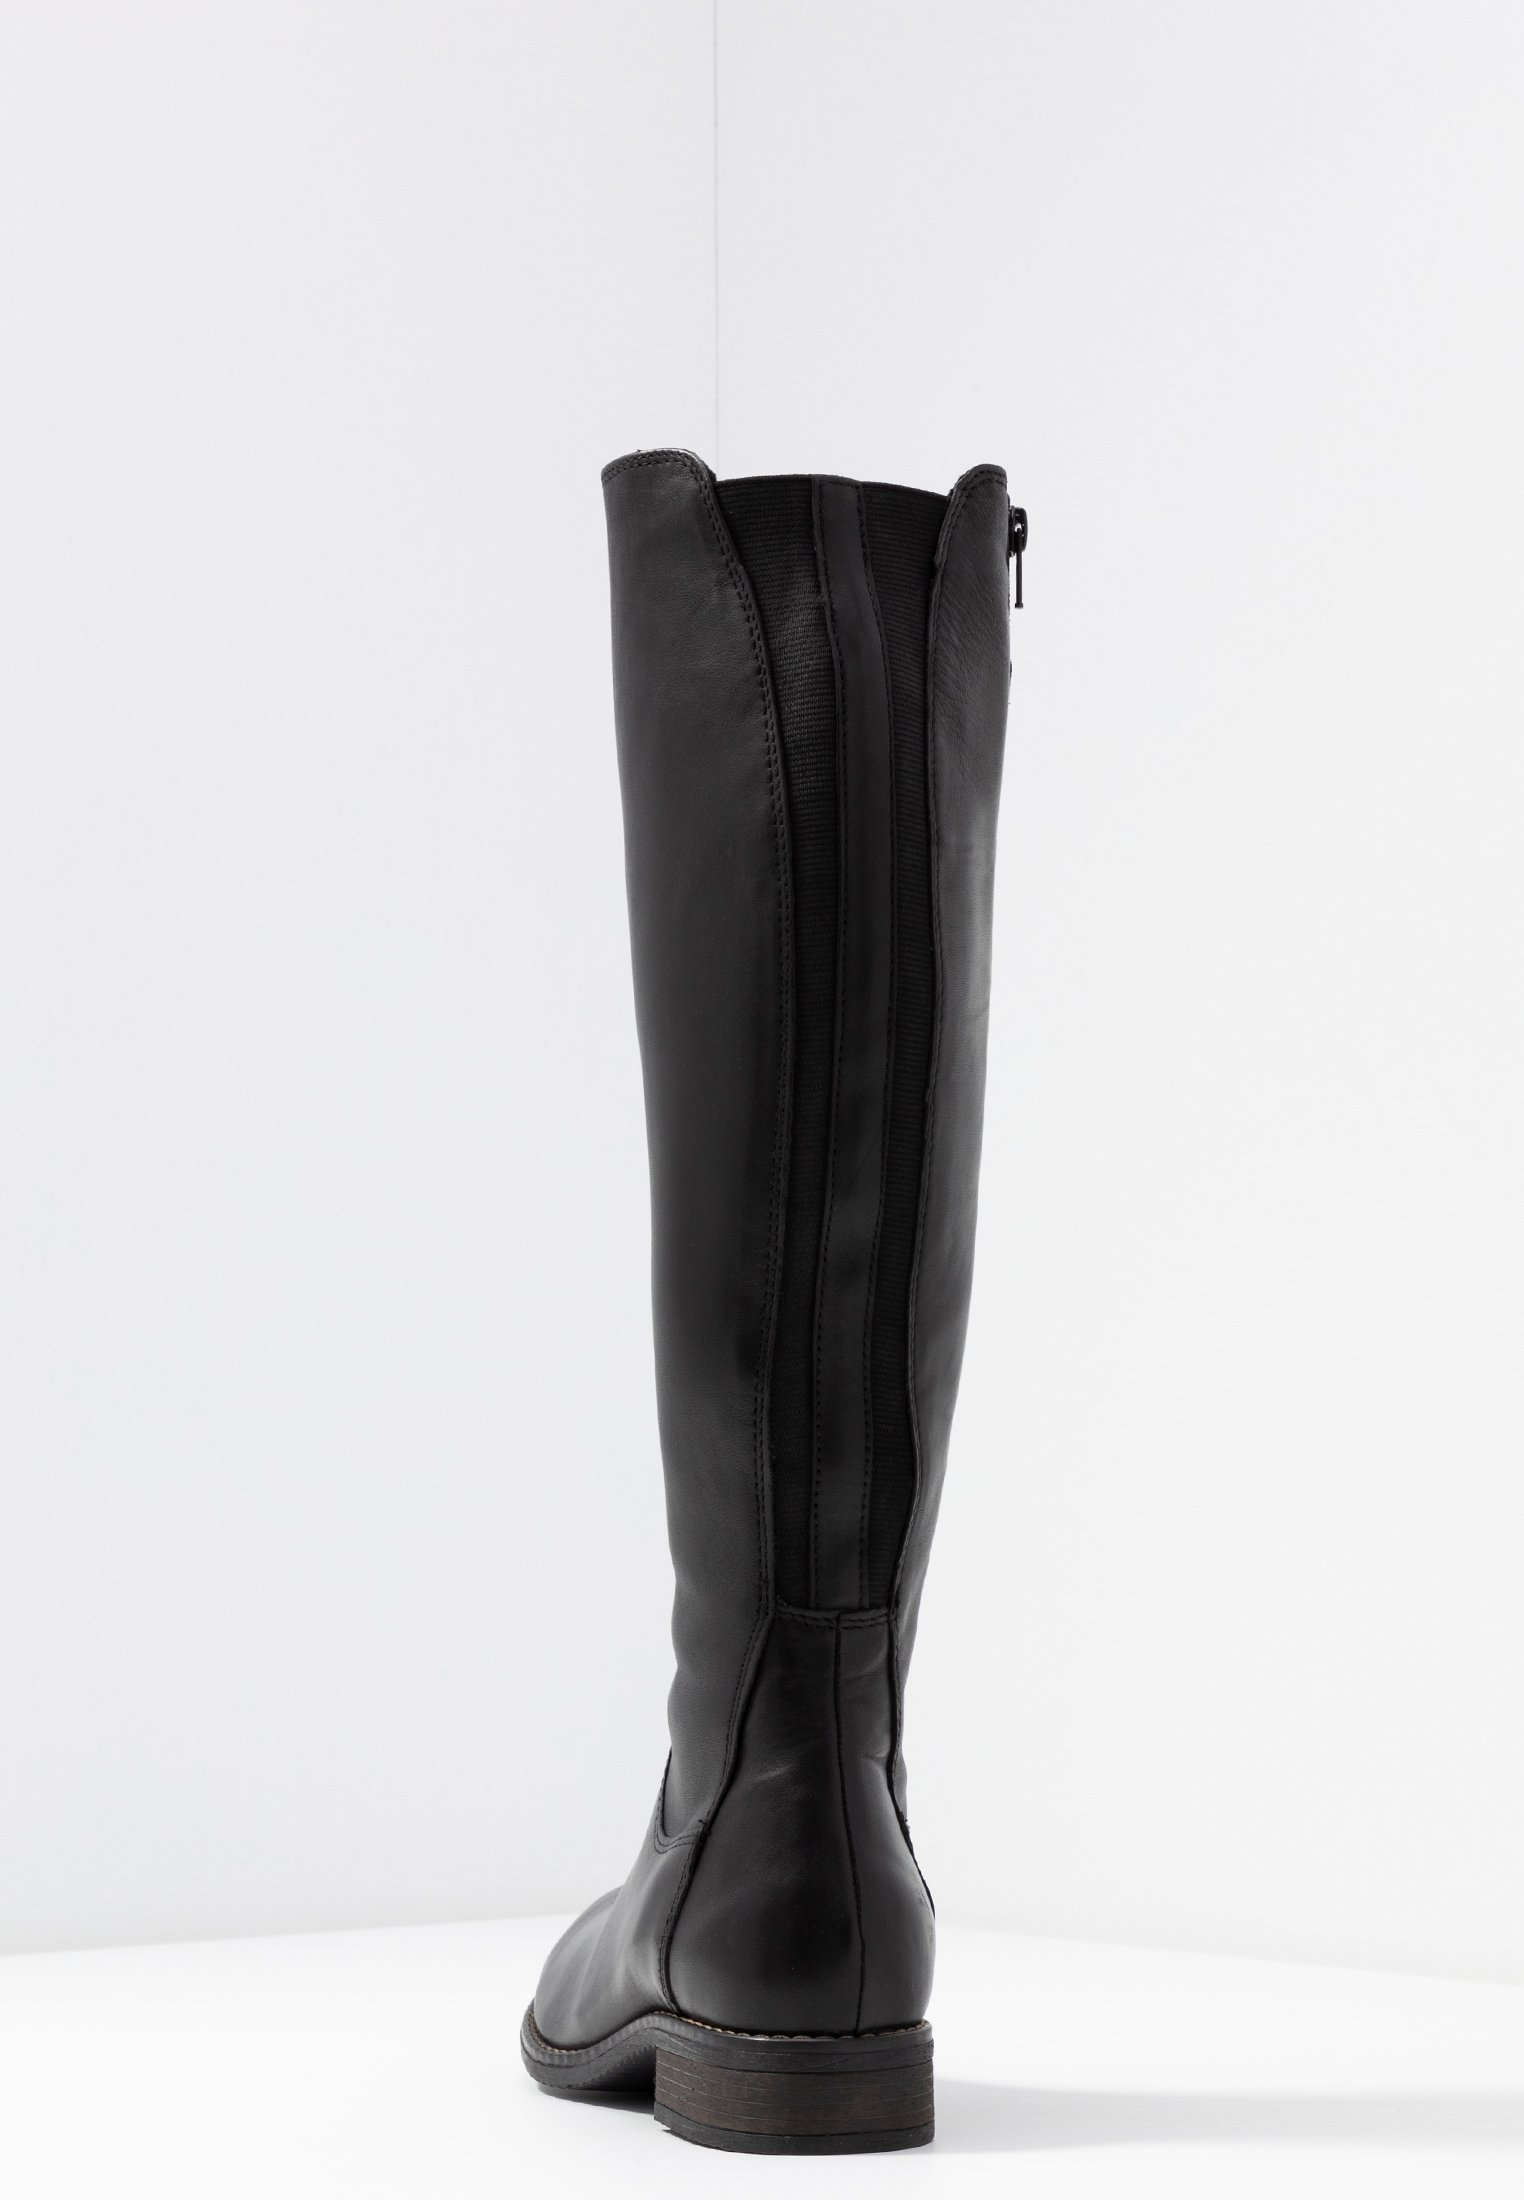 Pier One Boots - black